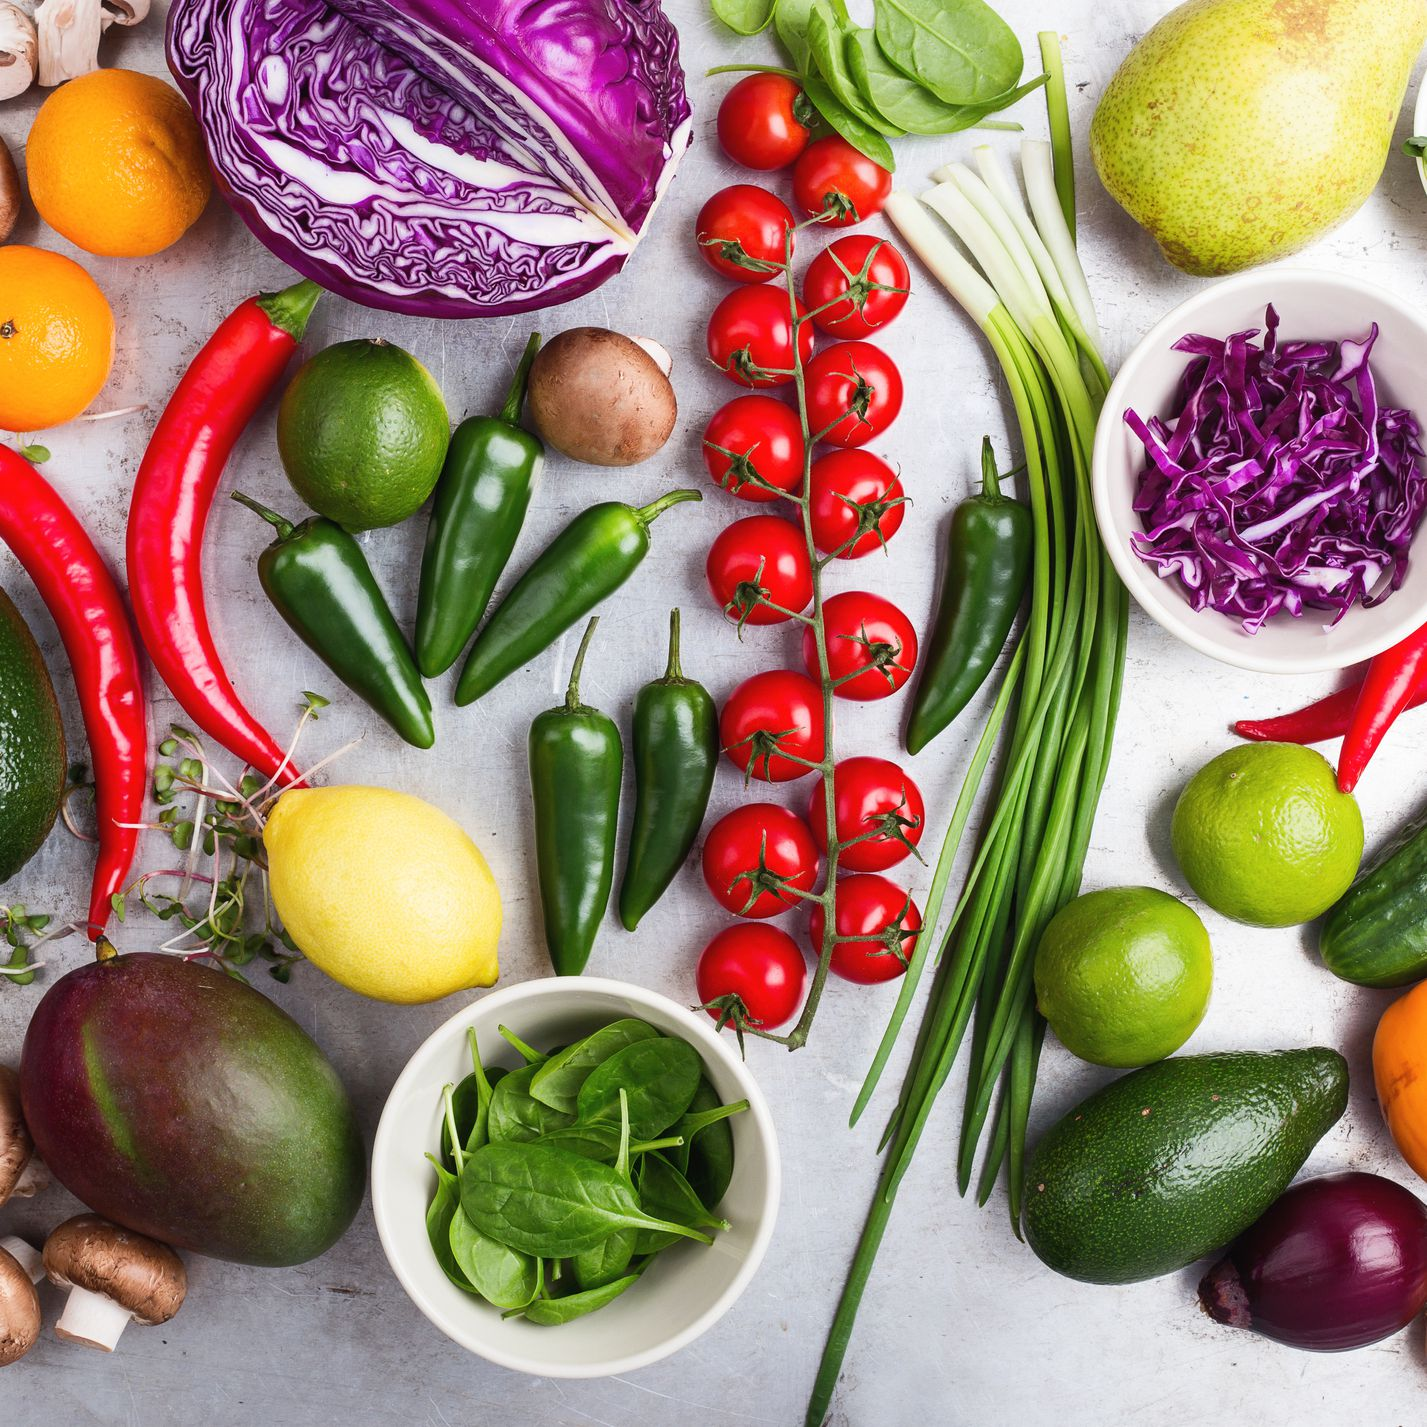 Cheapest Fruits and Vegetables Month-By-Month